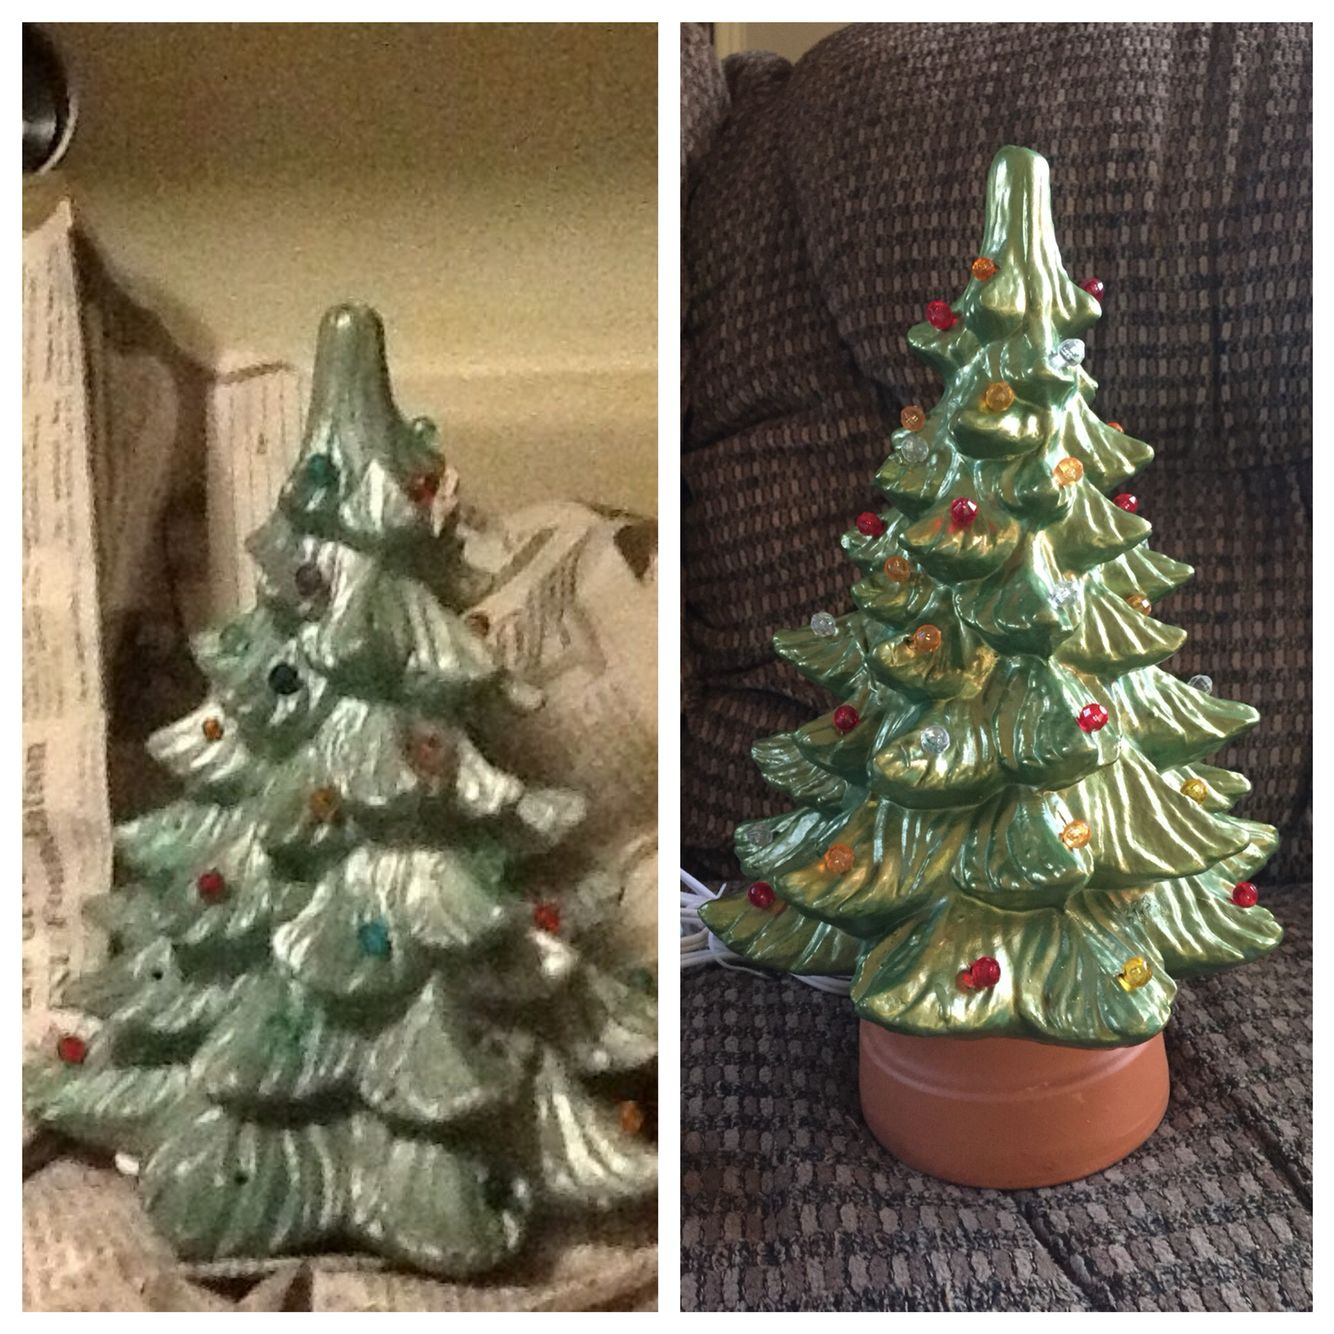 Goodwill makeover! Ceramic Christmas tree missing lights ... on